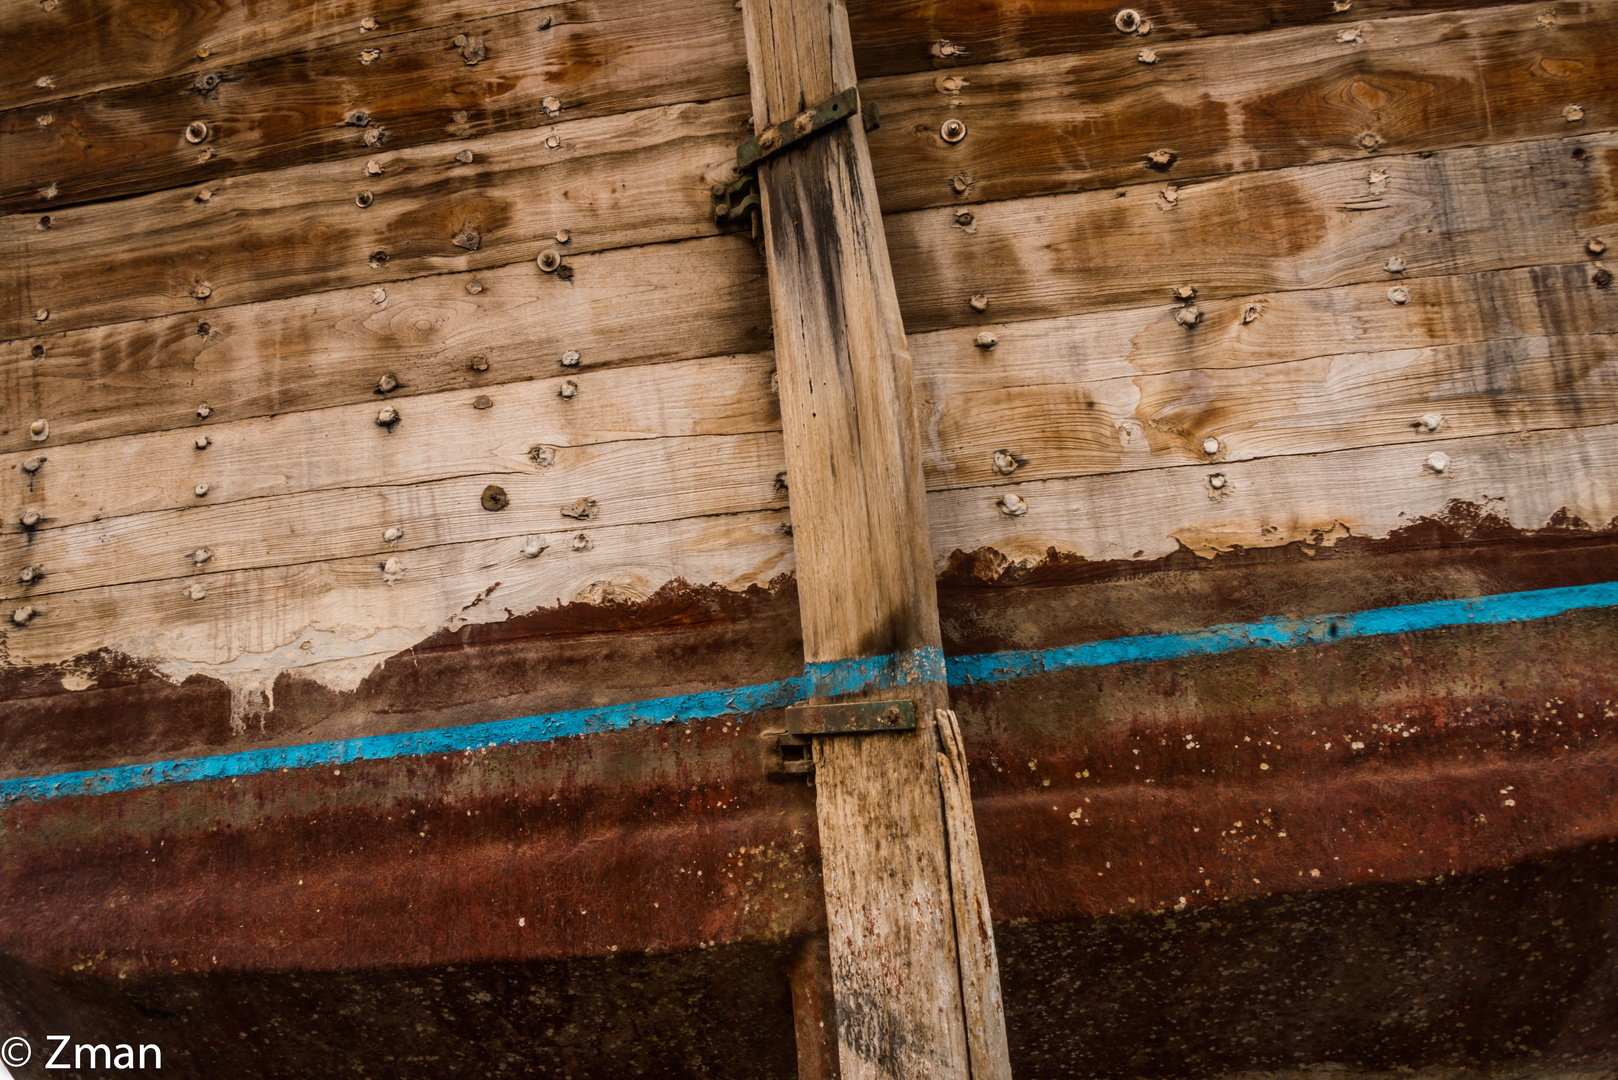 Rudder of the Decommissioned Dhow.